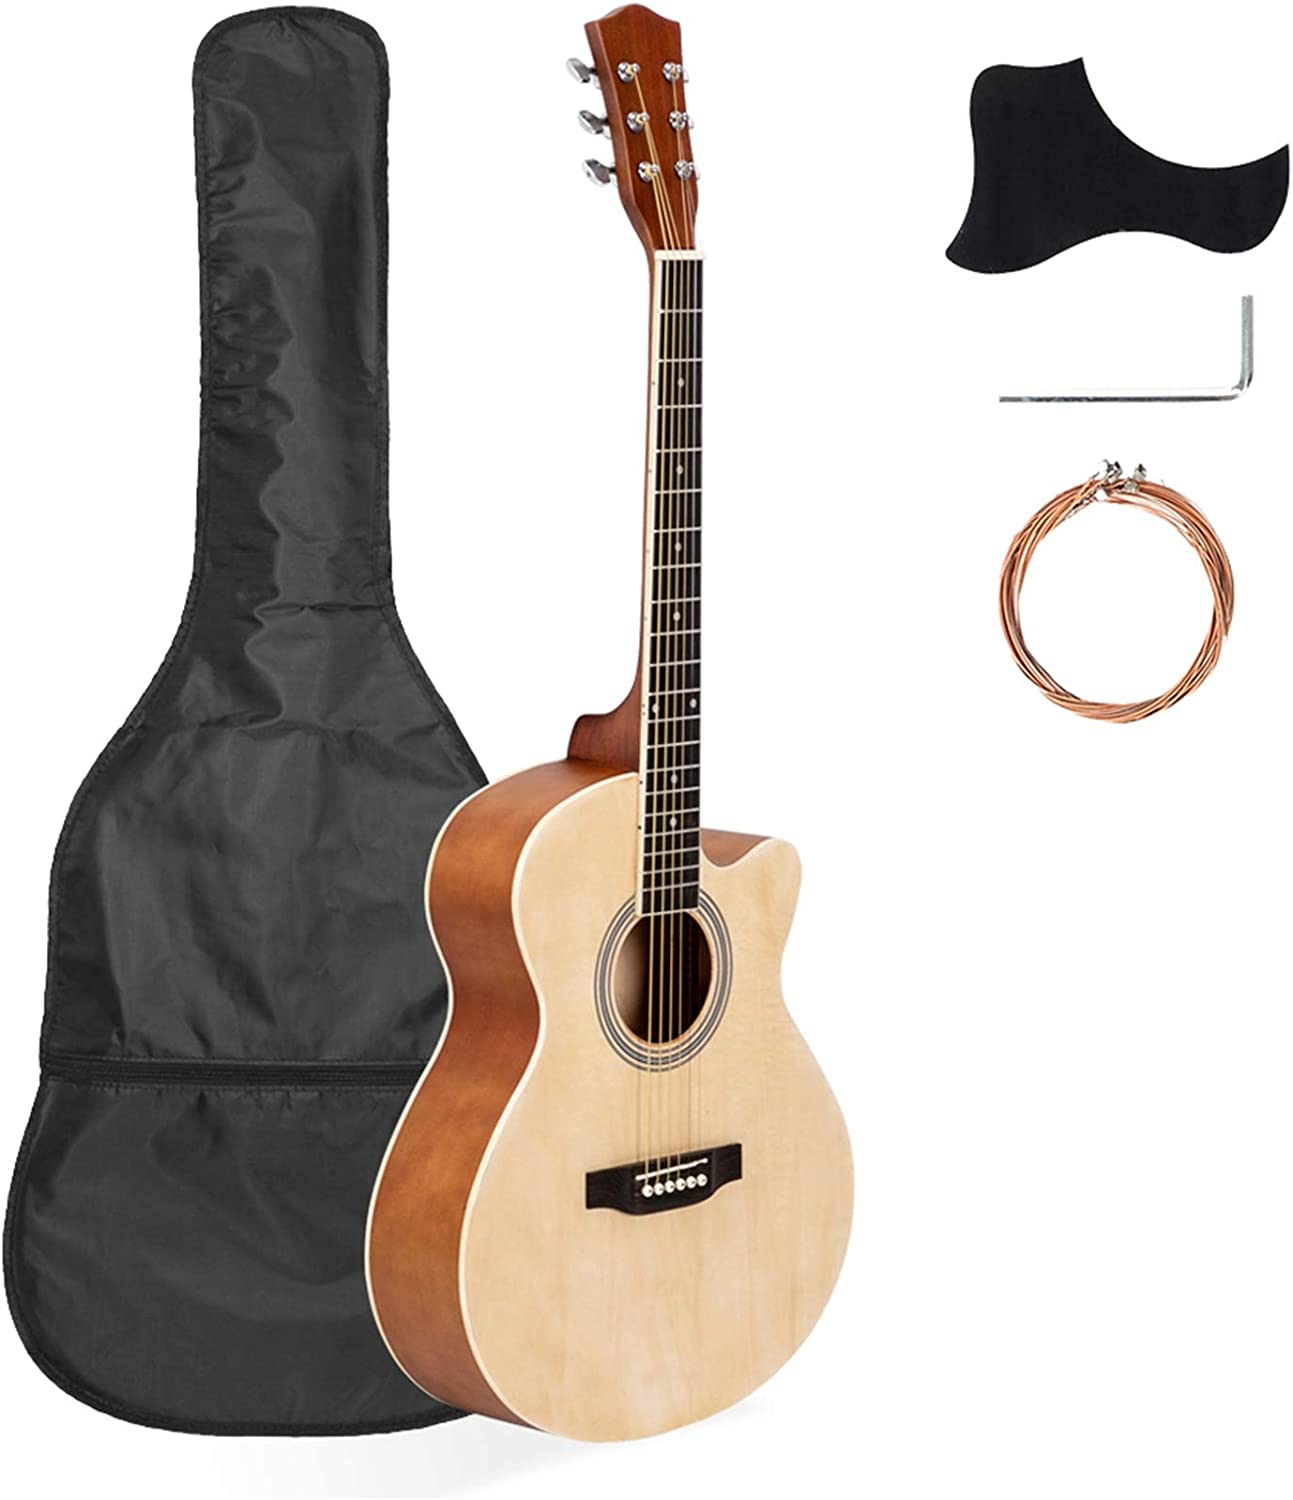 DOLMER 40 Inch Max 46% OFF Cutaway Acoustic Guitar Ranking TOP12 Beginner Kit Frets 20 for